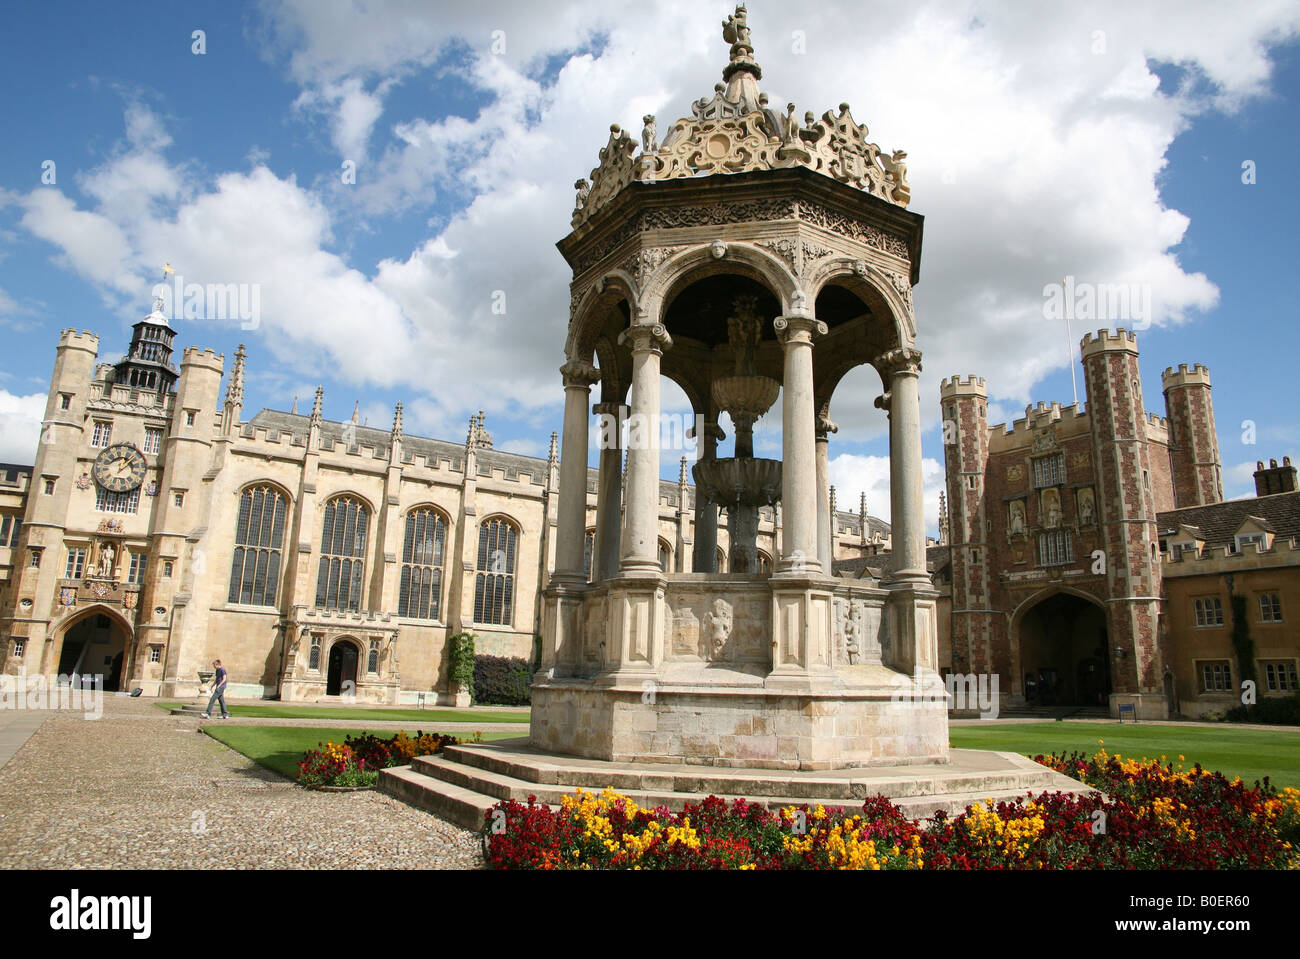 Great Court and Fountain at Trinity College Cambridge - Stock Image